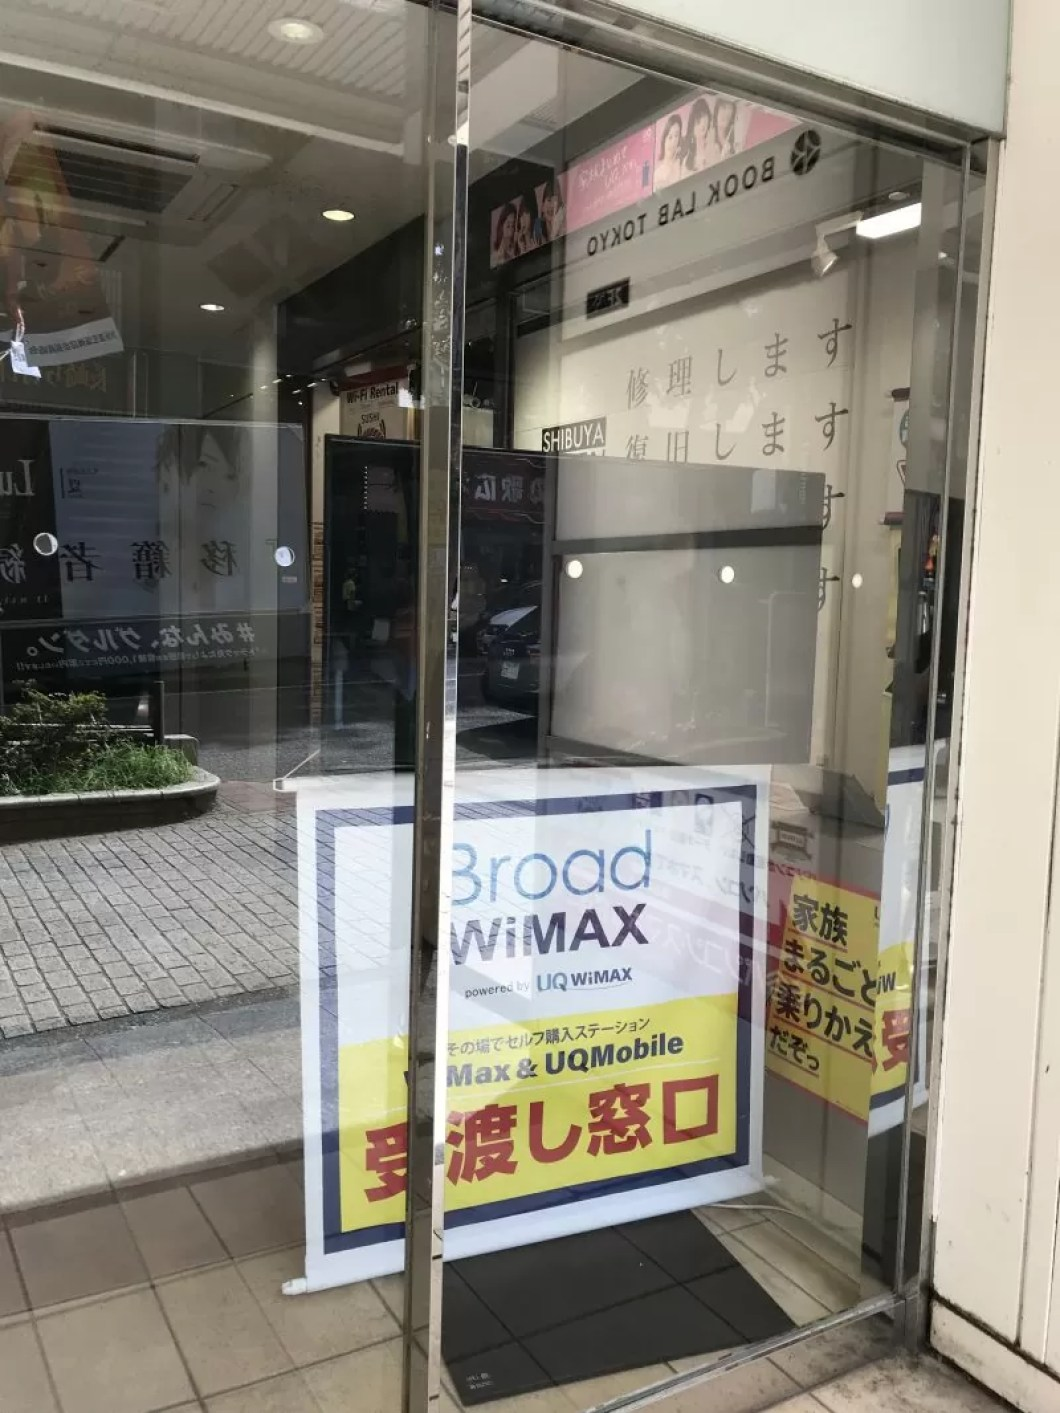 Broad WiMAX渋谷受け取りセンター